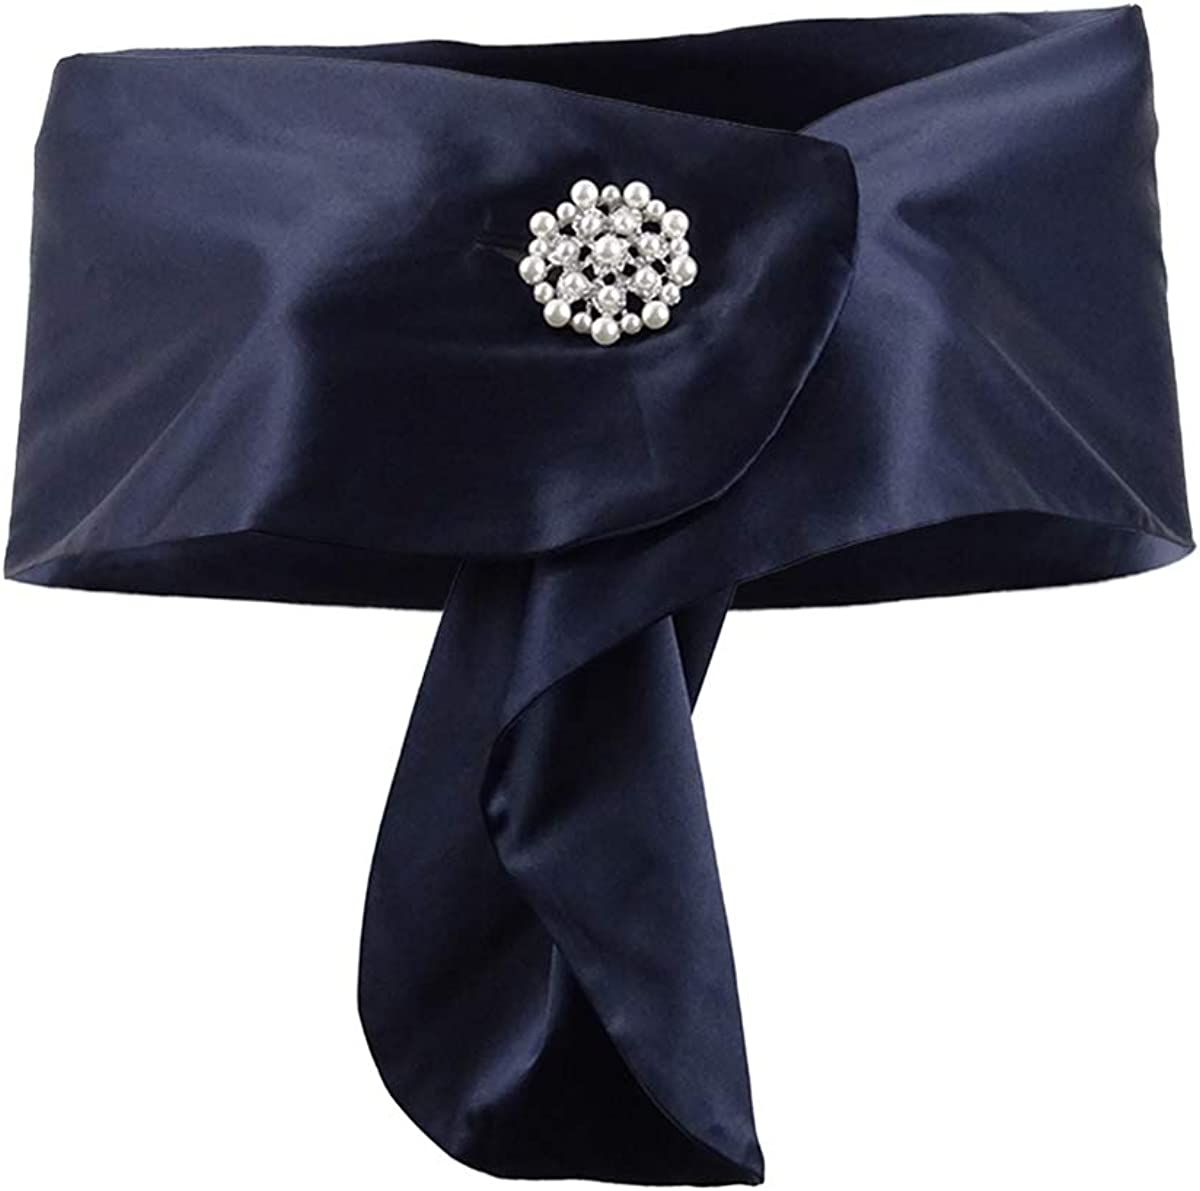 ADRIANNA PAPELL Womens Navy Satin Cape With Brooch Evening Scarf S